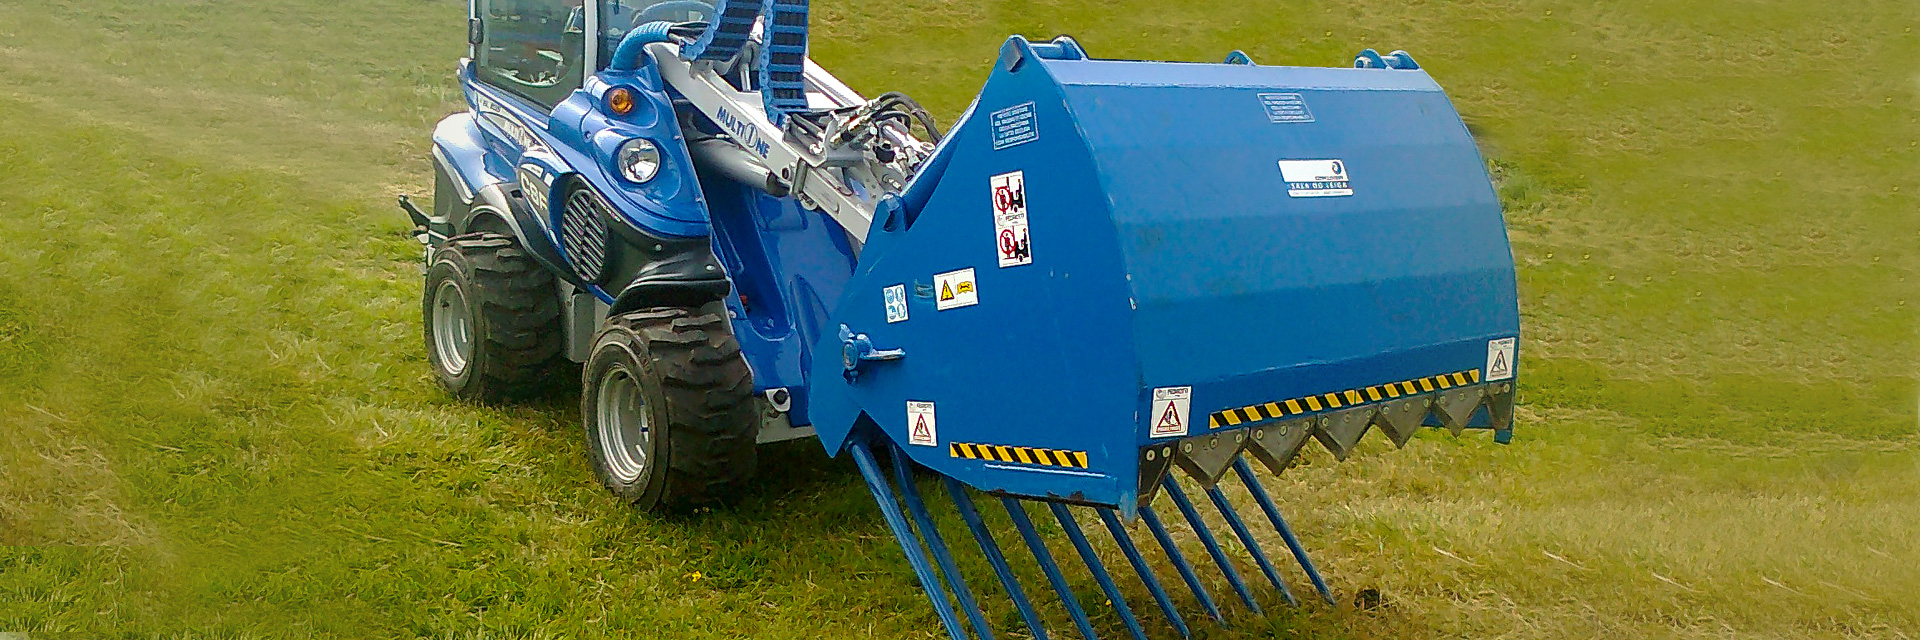 Multione-silage-cutting-bucket